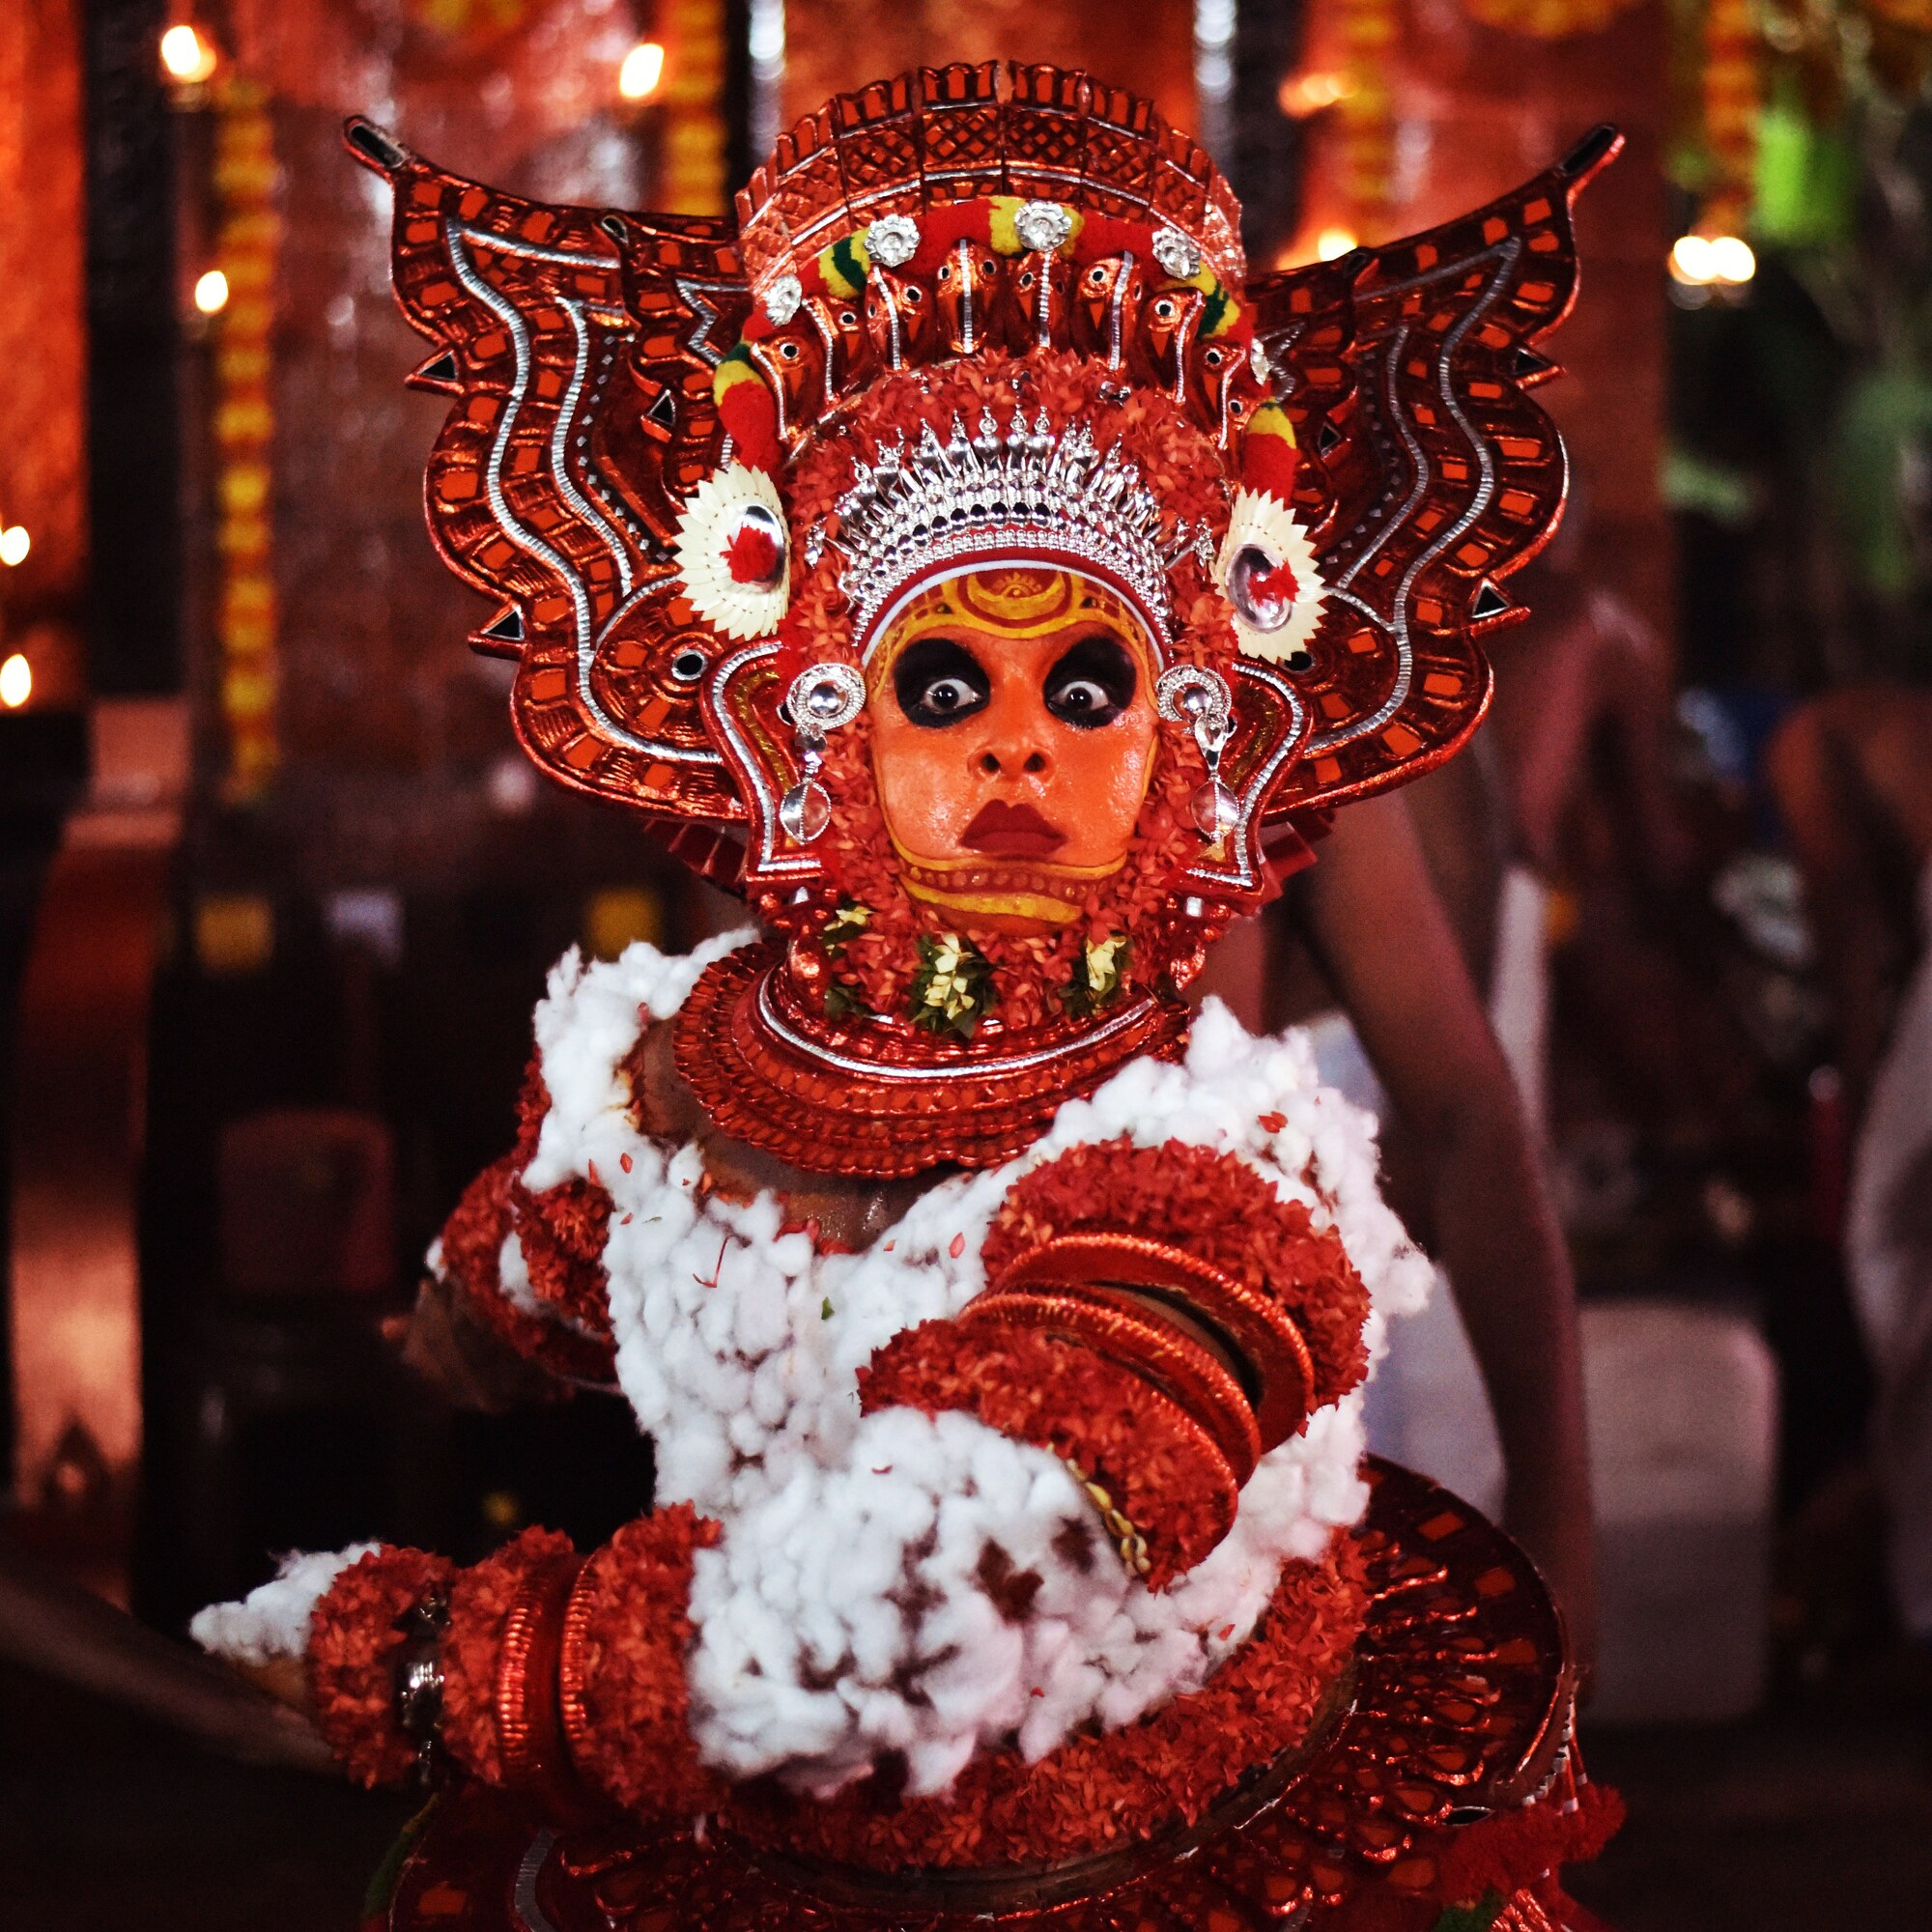 It was from a traditional theyyam event in Kerala so this portrait from theyyam artist , made me feel how strong they are in thr cultures and practices